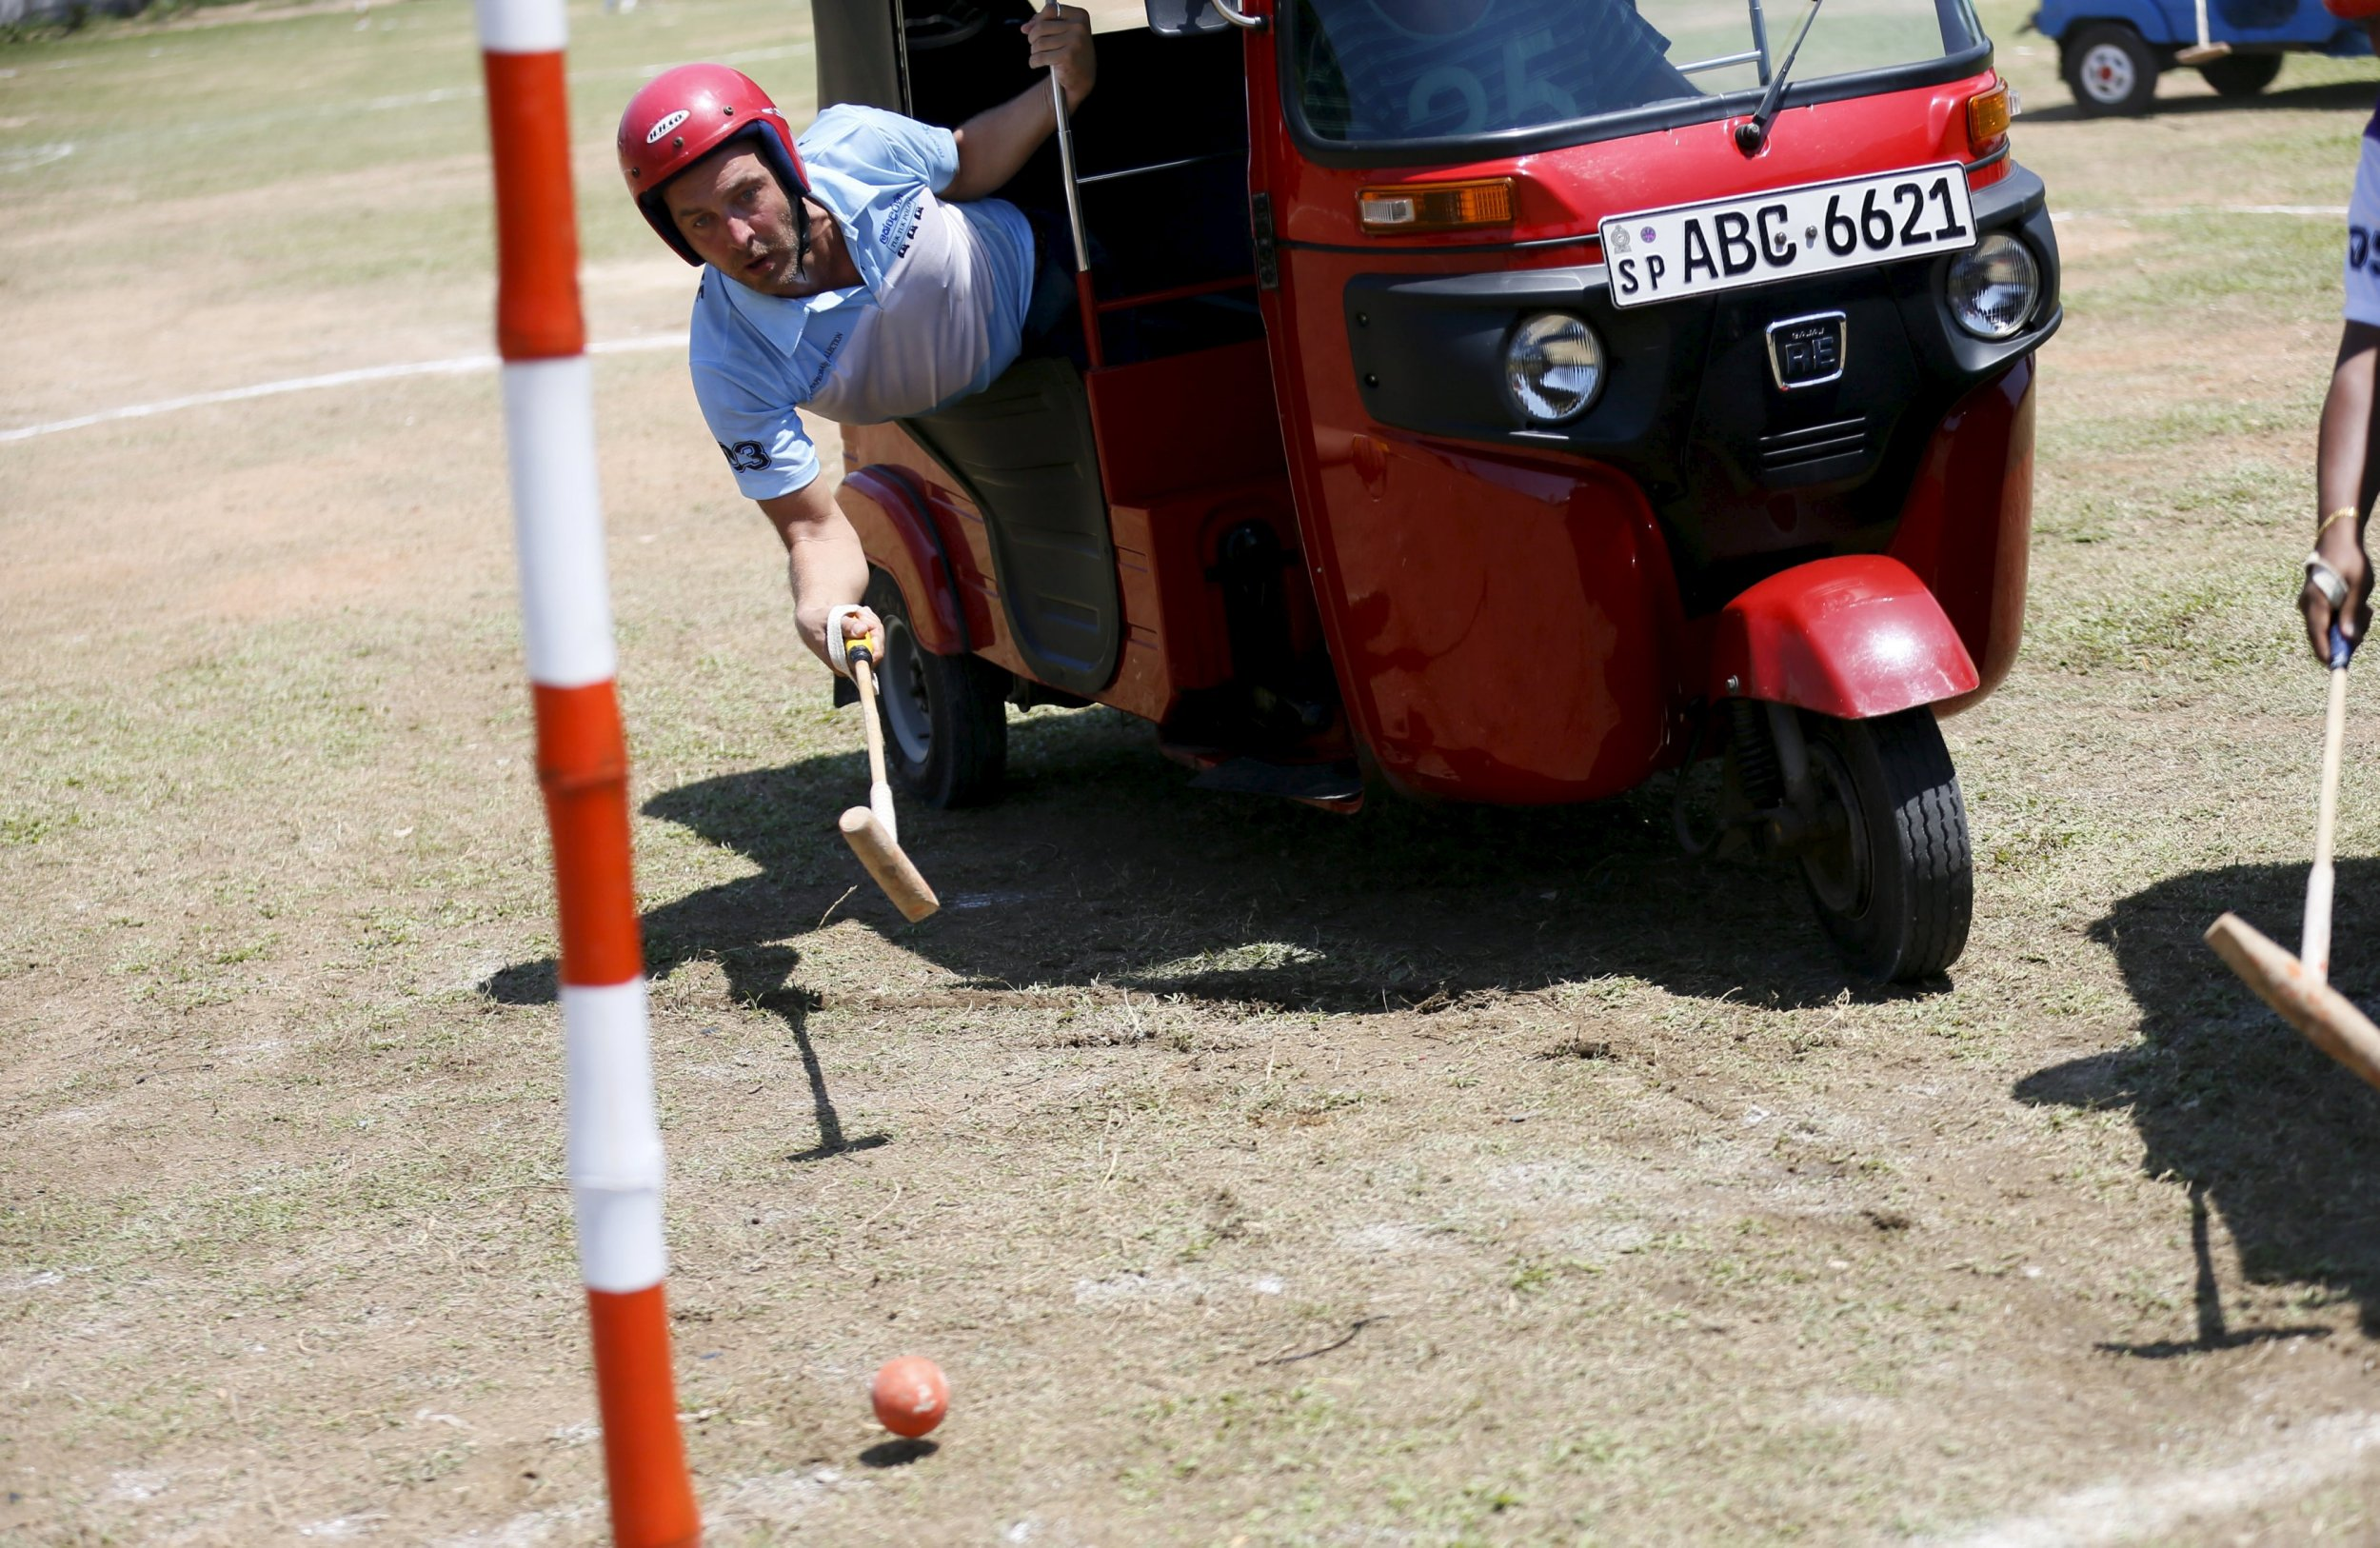 """A competitor hits the ball to get a goal during a """"Tuk Tuk"""" (Three-Wheeled) Polo game in Galle, February 21, 2016. REUTERS/Dinuka Liyanawatte"""